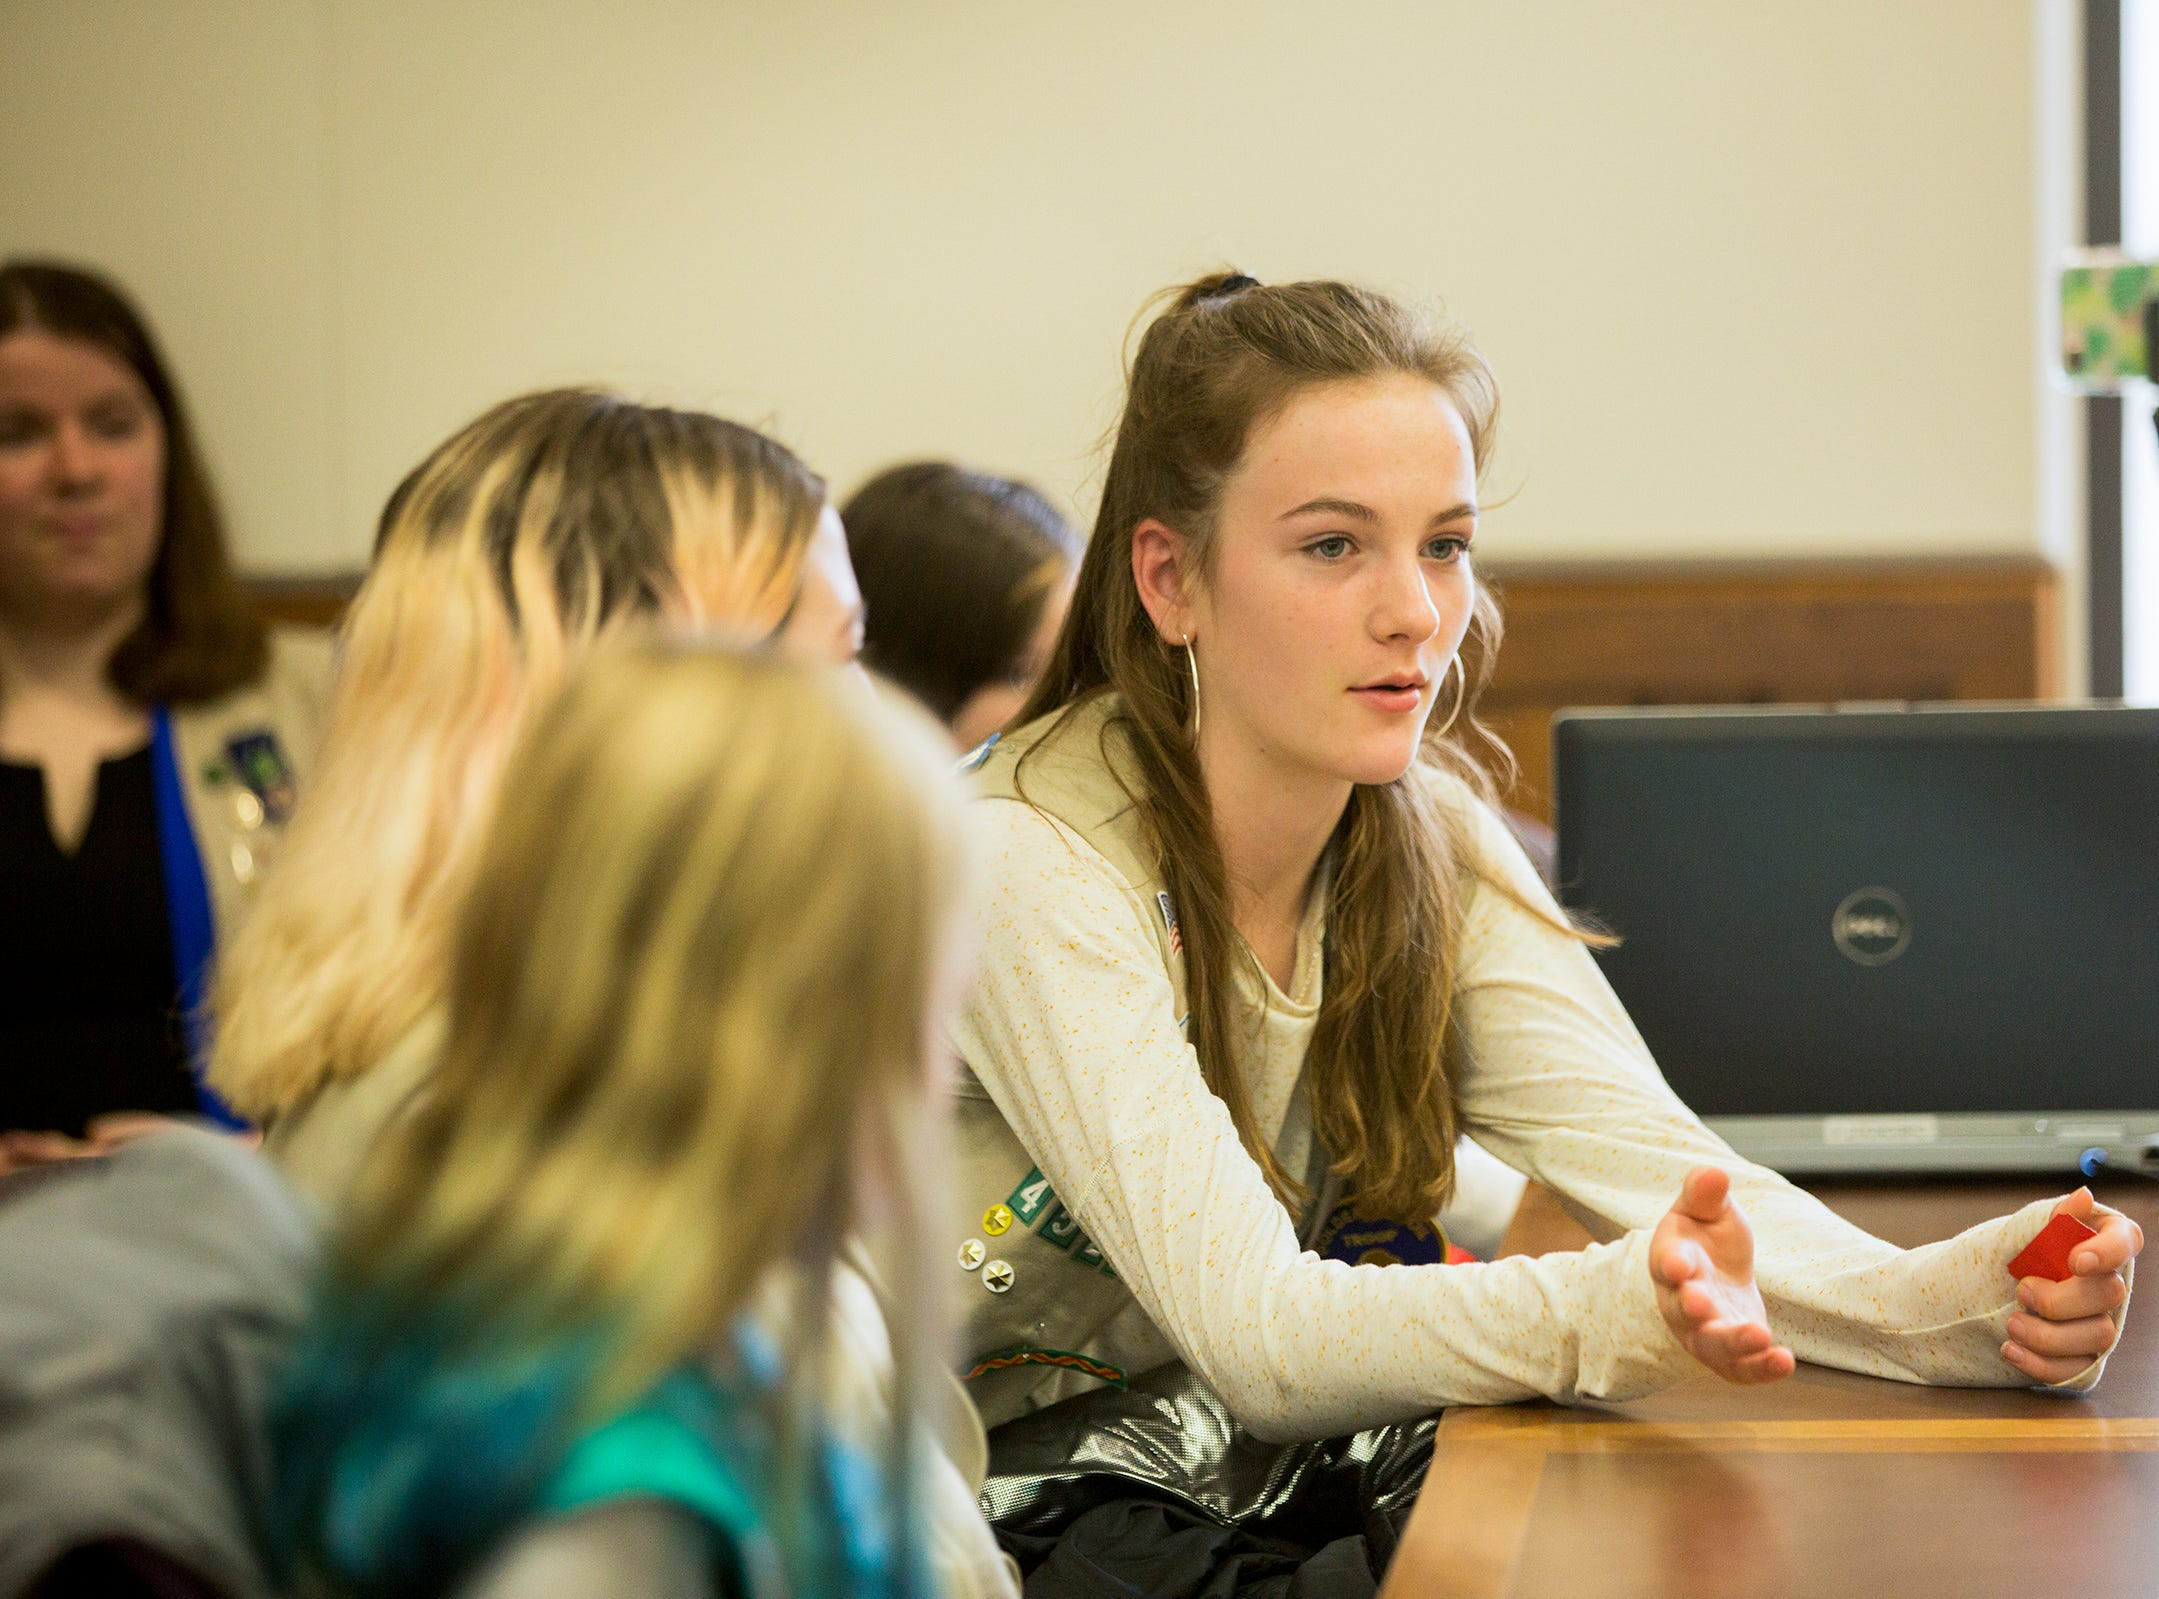 Hannah Doty, of Portland, asks a panel of members of the Oregon Legislature how gender is dealt with in their work environment during Girl Scout Leadership Day at the Oregon State Capitol in Salem March 12, 2019.